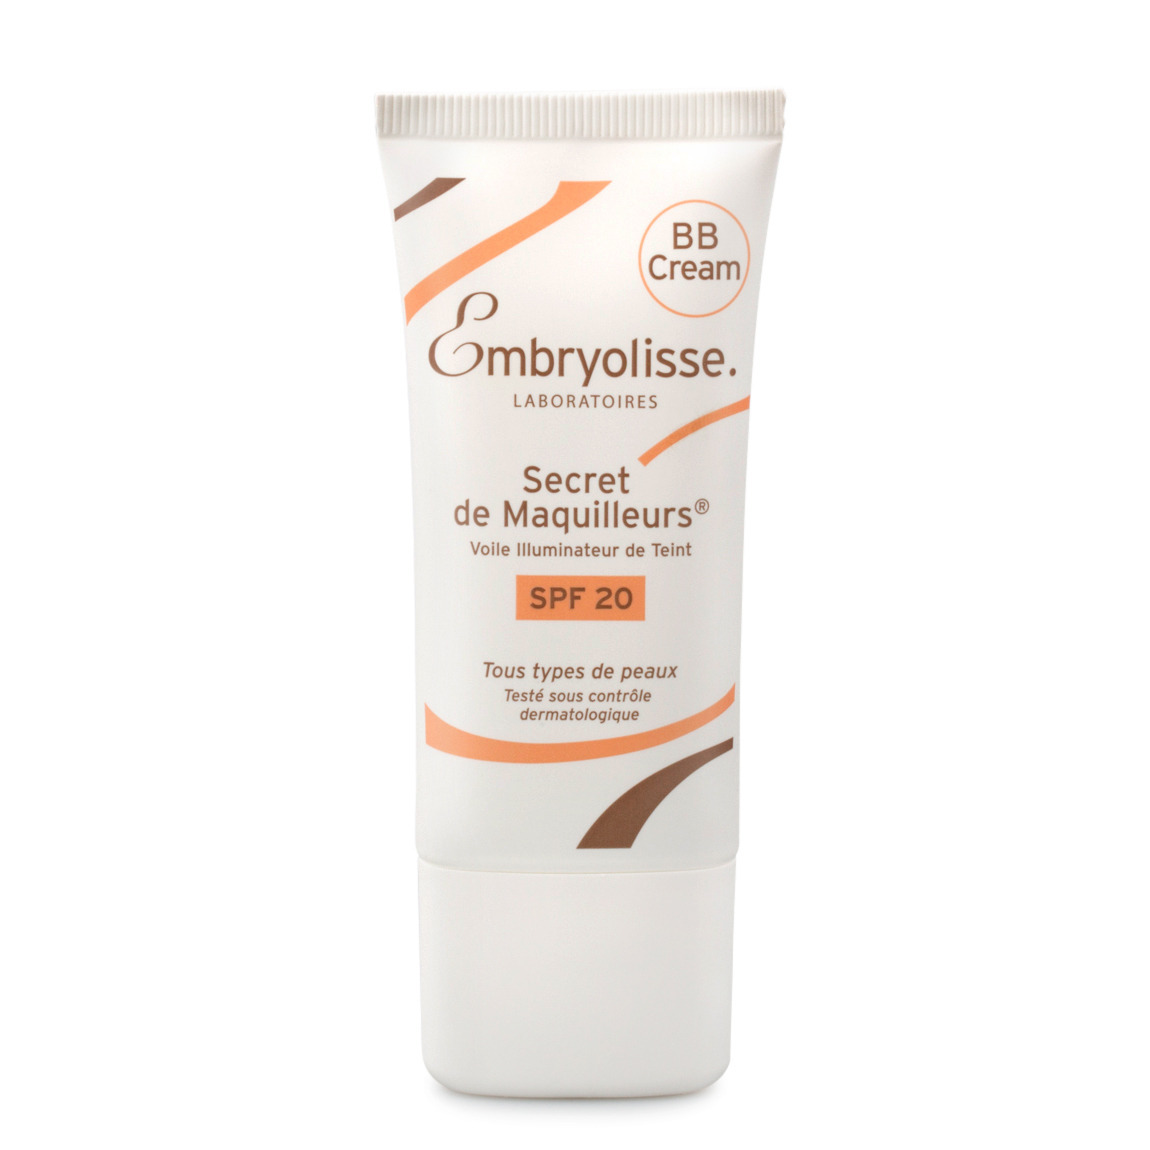 Embryolisse Secret de Maquilleurs BB Cream product smear.